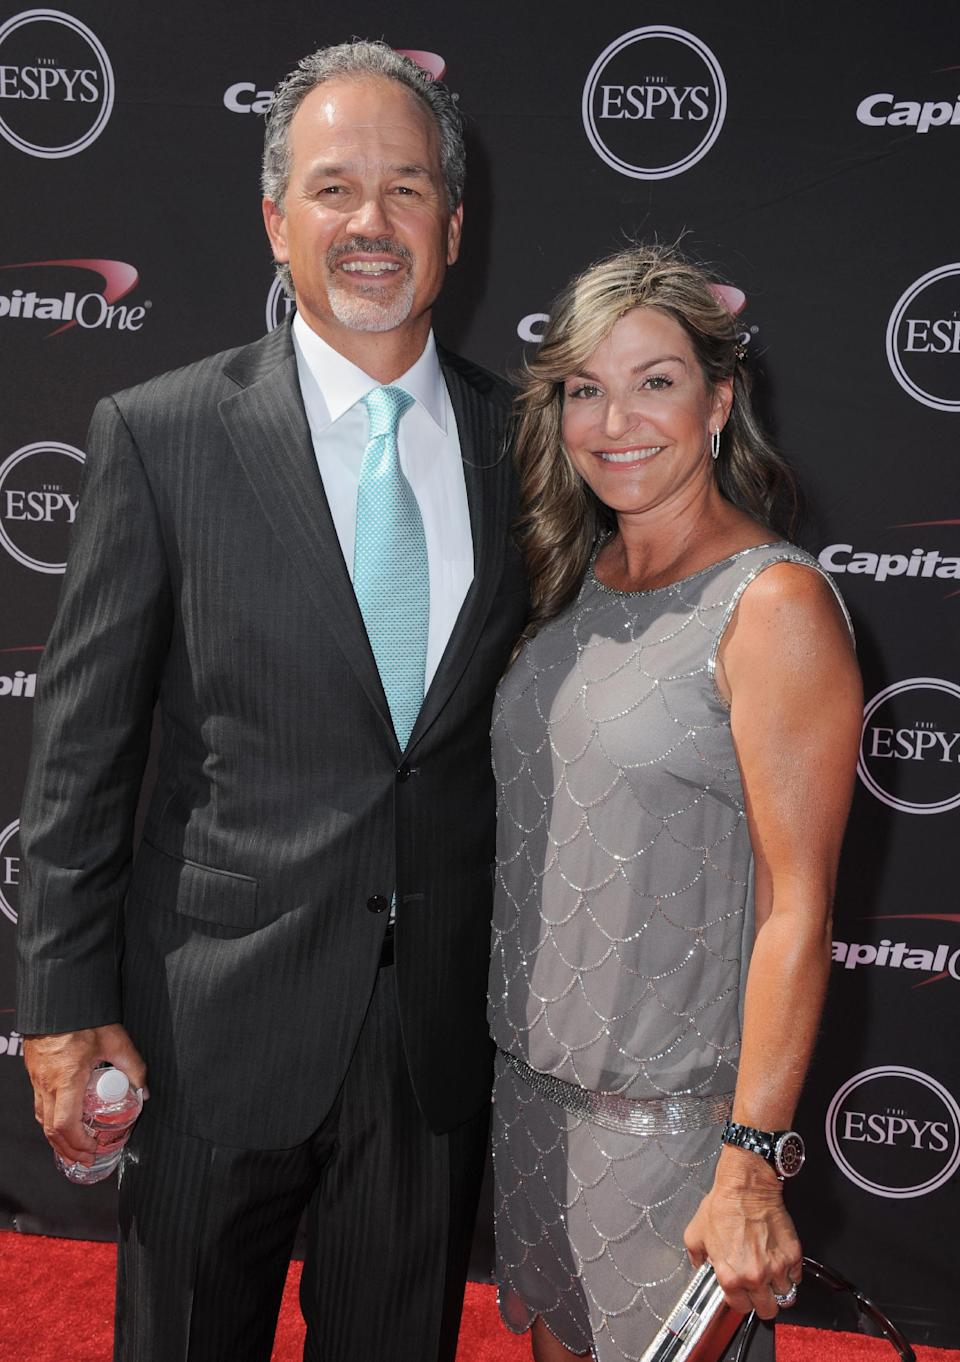 Indianapolis Colts coach Chuck Pagano, left, and Tina Pagano arrive at the ESPY Awards on Wednesday, July 17, 2013, at the Nokia Theater in Los Angeles. (Photo by Jordan Strauss/Invision/AP)